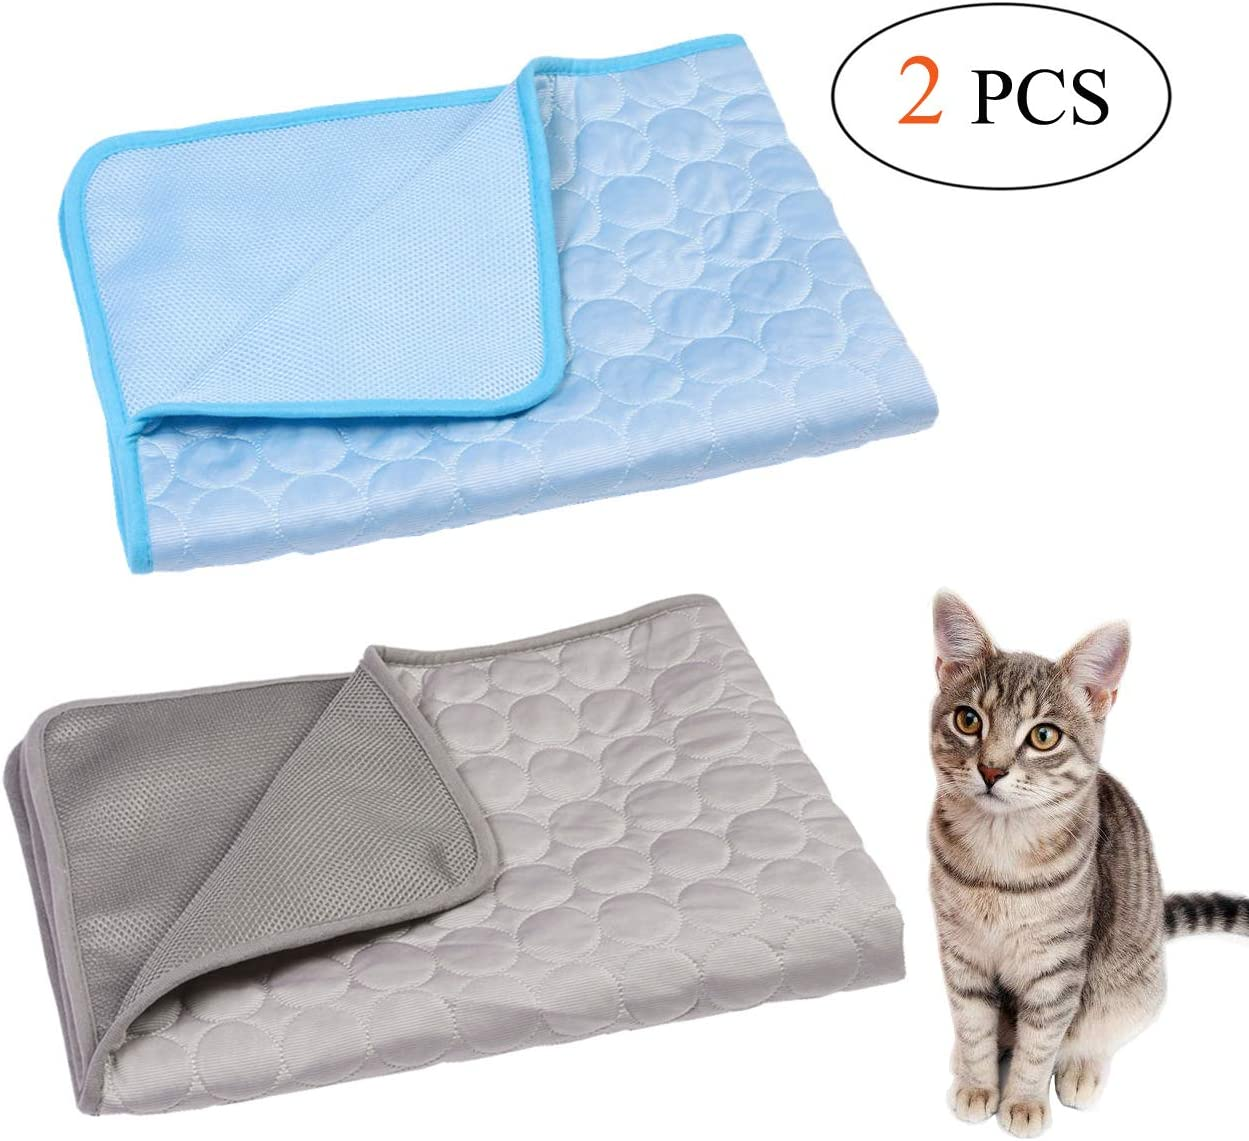 Wontee Pet Cooling Mat Dog Ice Silk Pad Blanket Washable Summer Sleeping Bed for Cats Dogs Kennel Sofa Bed Floor Travel Car Seats (Blue + Grey)